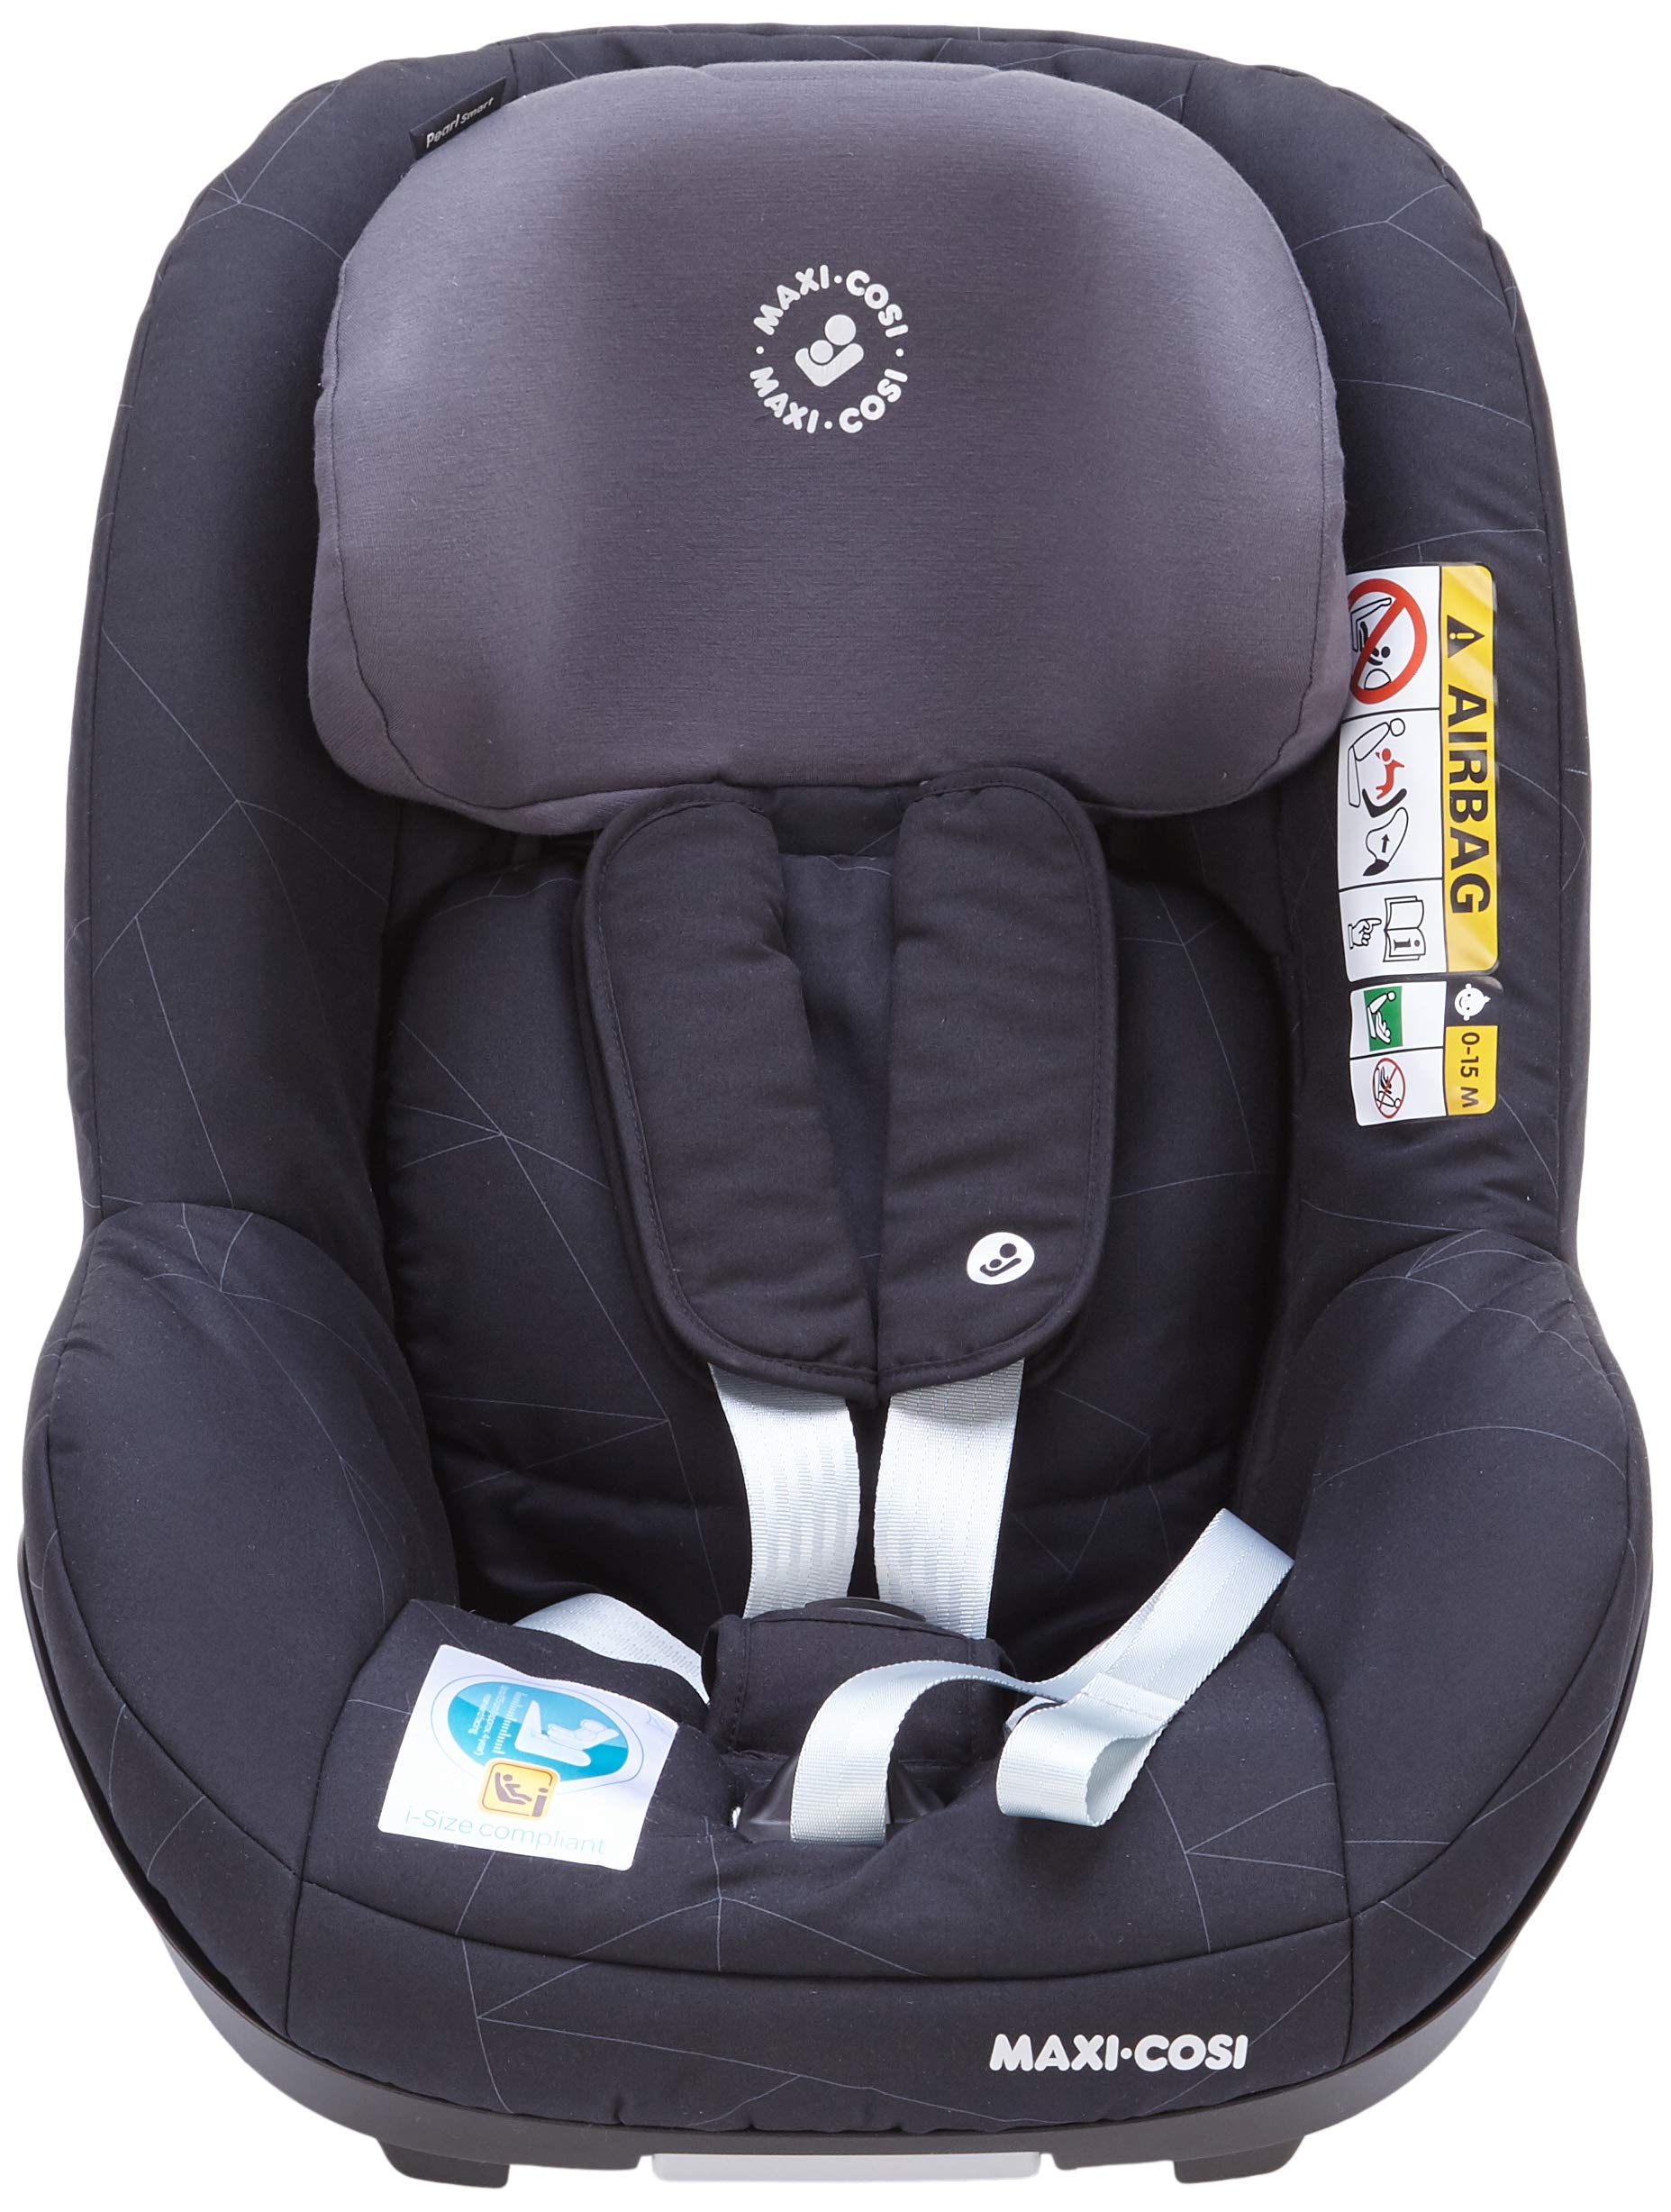 Maxi-Cosi Pearl Smart i-Size Toddler Car Seat, 6 Months - 4 Years, 9-18 kg, 67 - 105 cm, Black Diamond Maxi-Cosi Car seat for toddlers, suitable from 6 months to 4 years (9 - 18 kg, 67 - 105 cm) Must be installed in combination with family fix one i-size base Harness and headrest of this car seat adjust simultaneously for easy adjustment when child grows 3